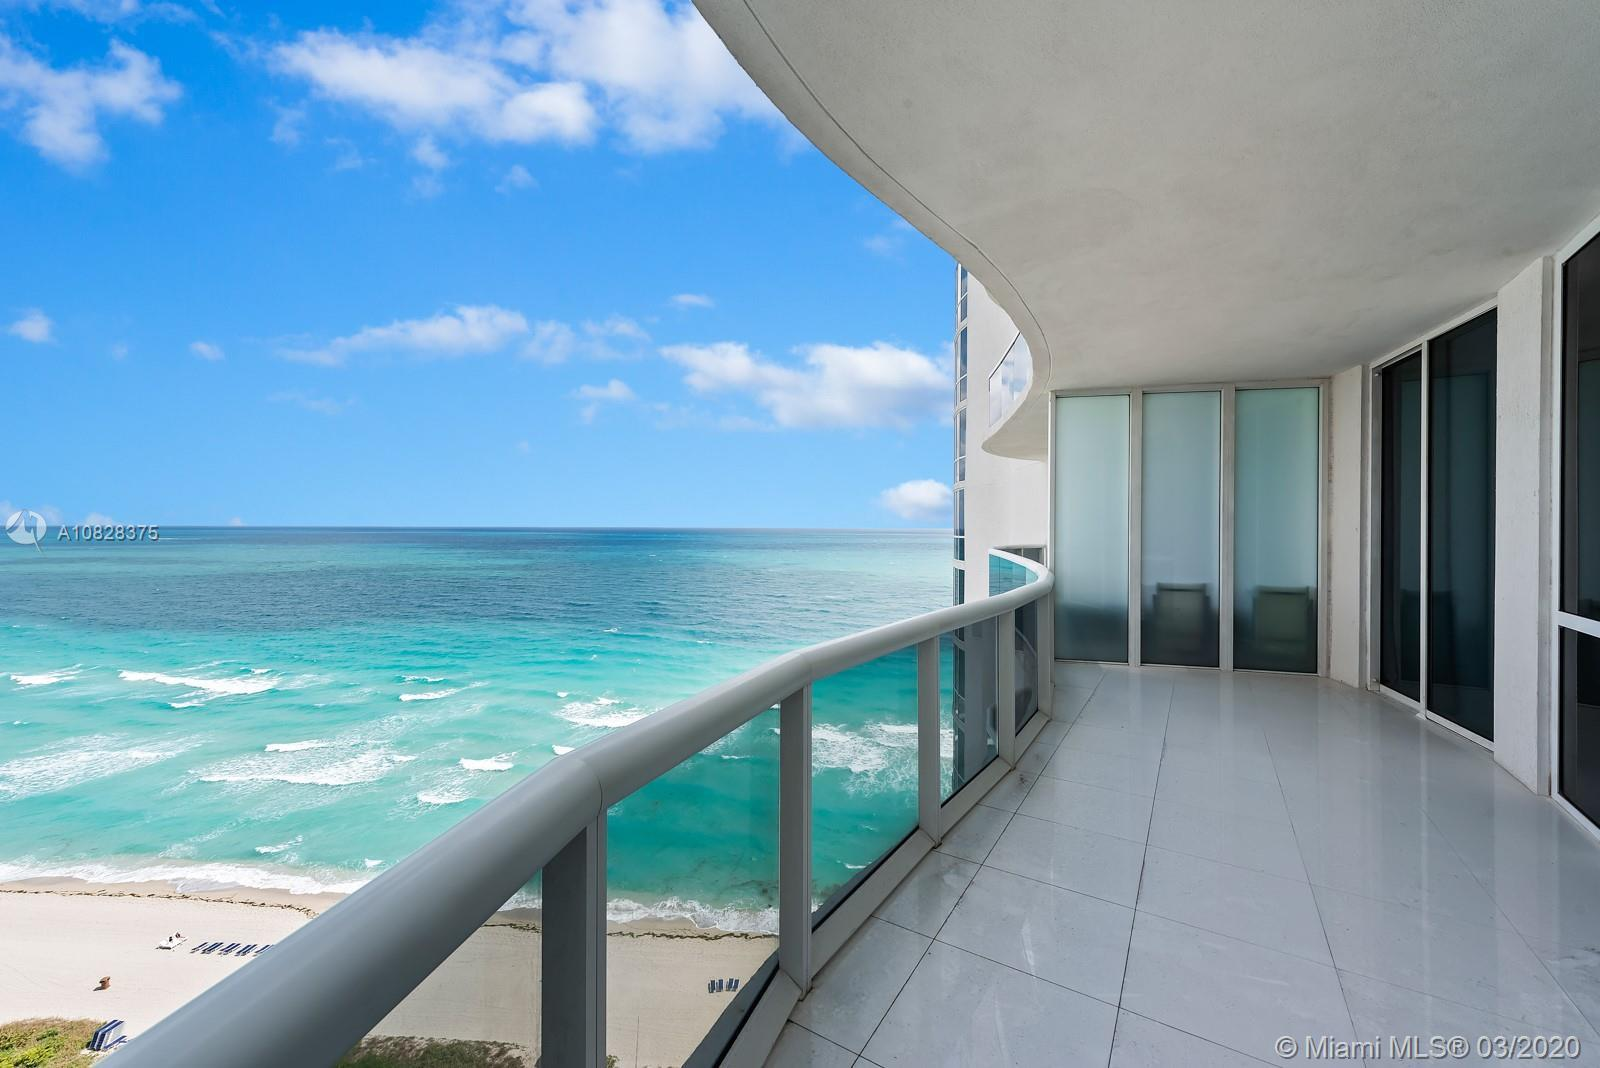 Spectacular 3Bedroom/ 3Bathroom residence with unobstructed direct ocean views, featuring marble flo